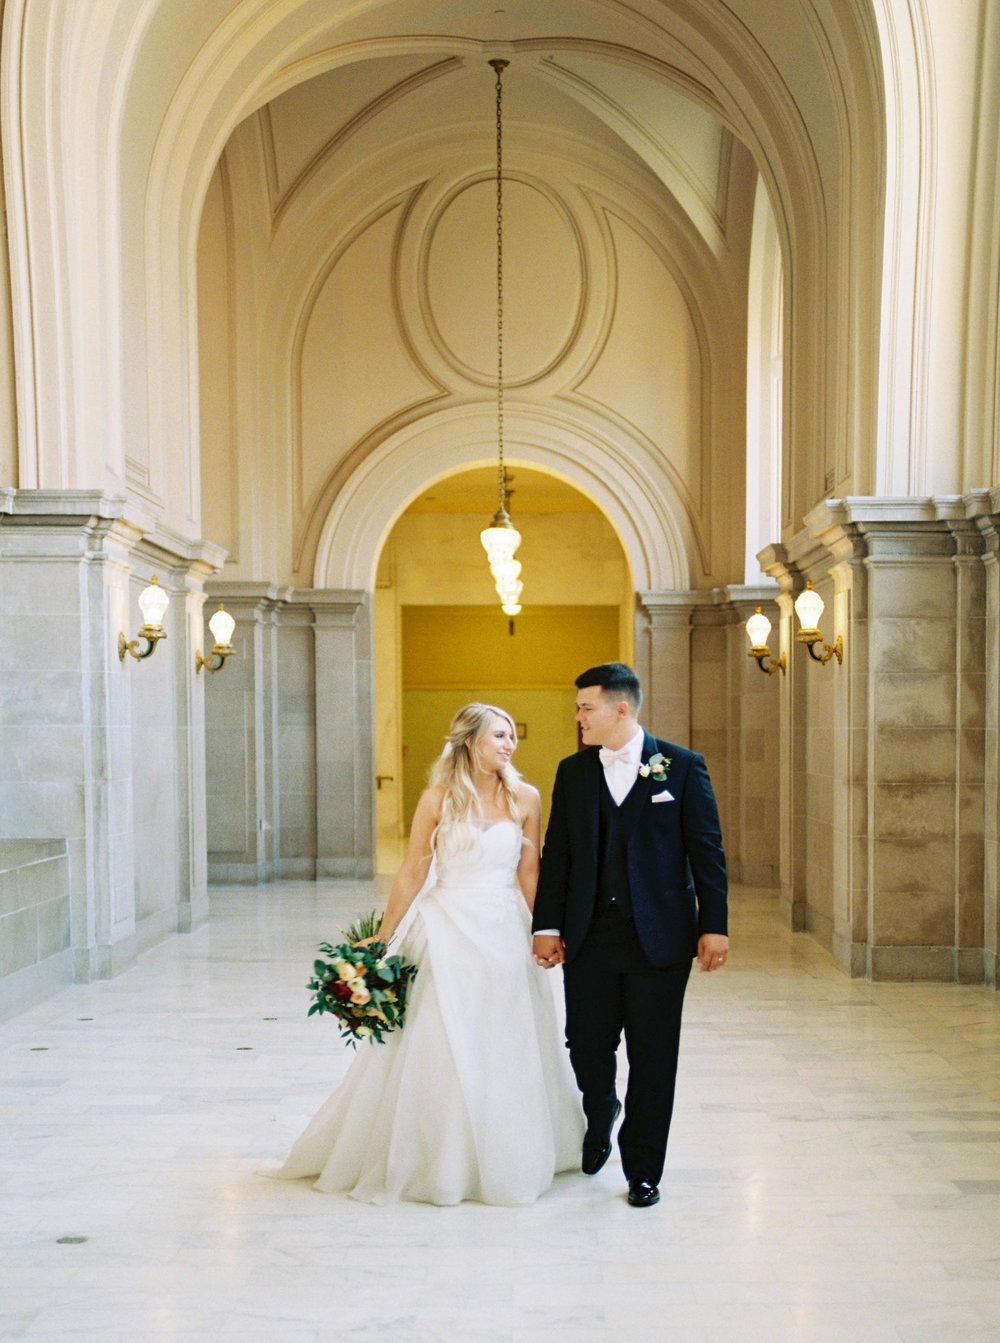 DennisRoyCoronel_Photography_SanFranciscoCityHall_Wedding-53.jpg